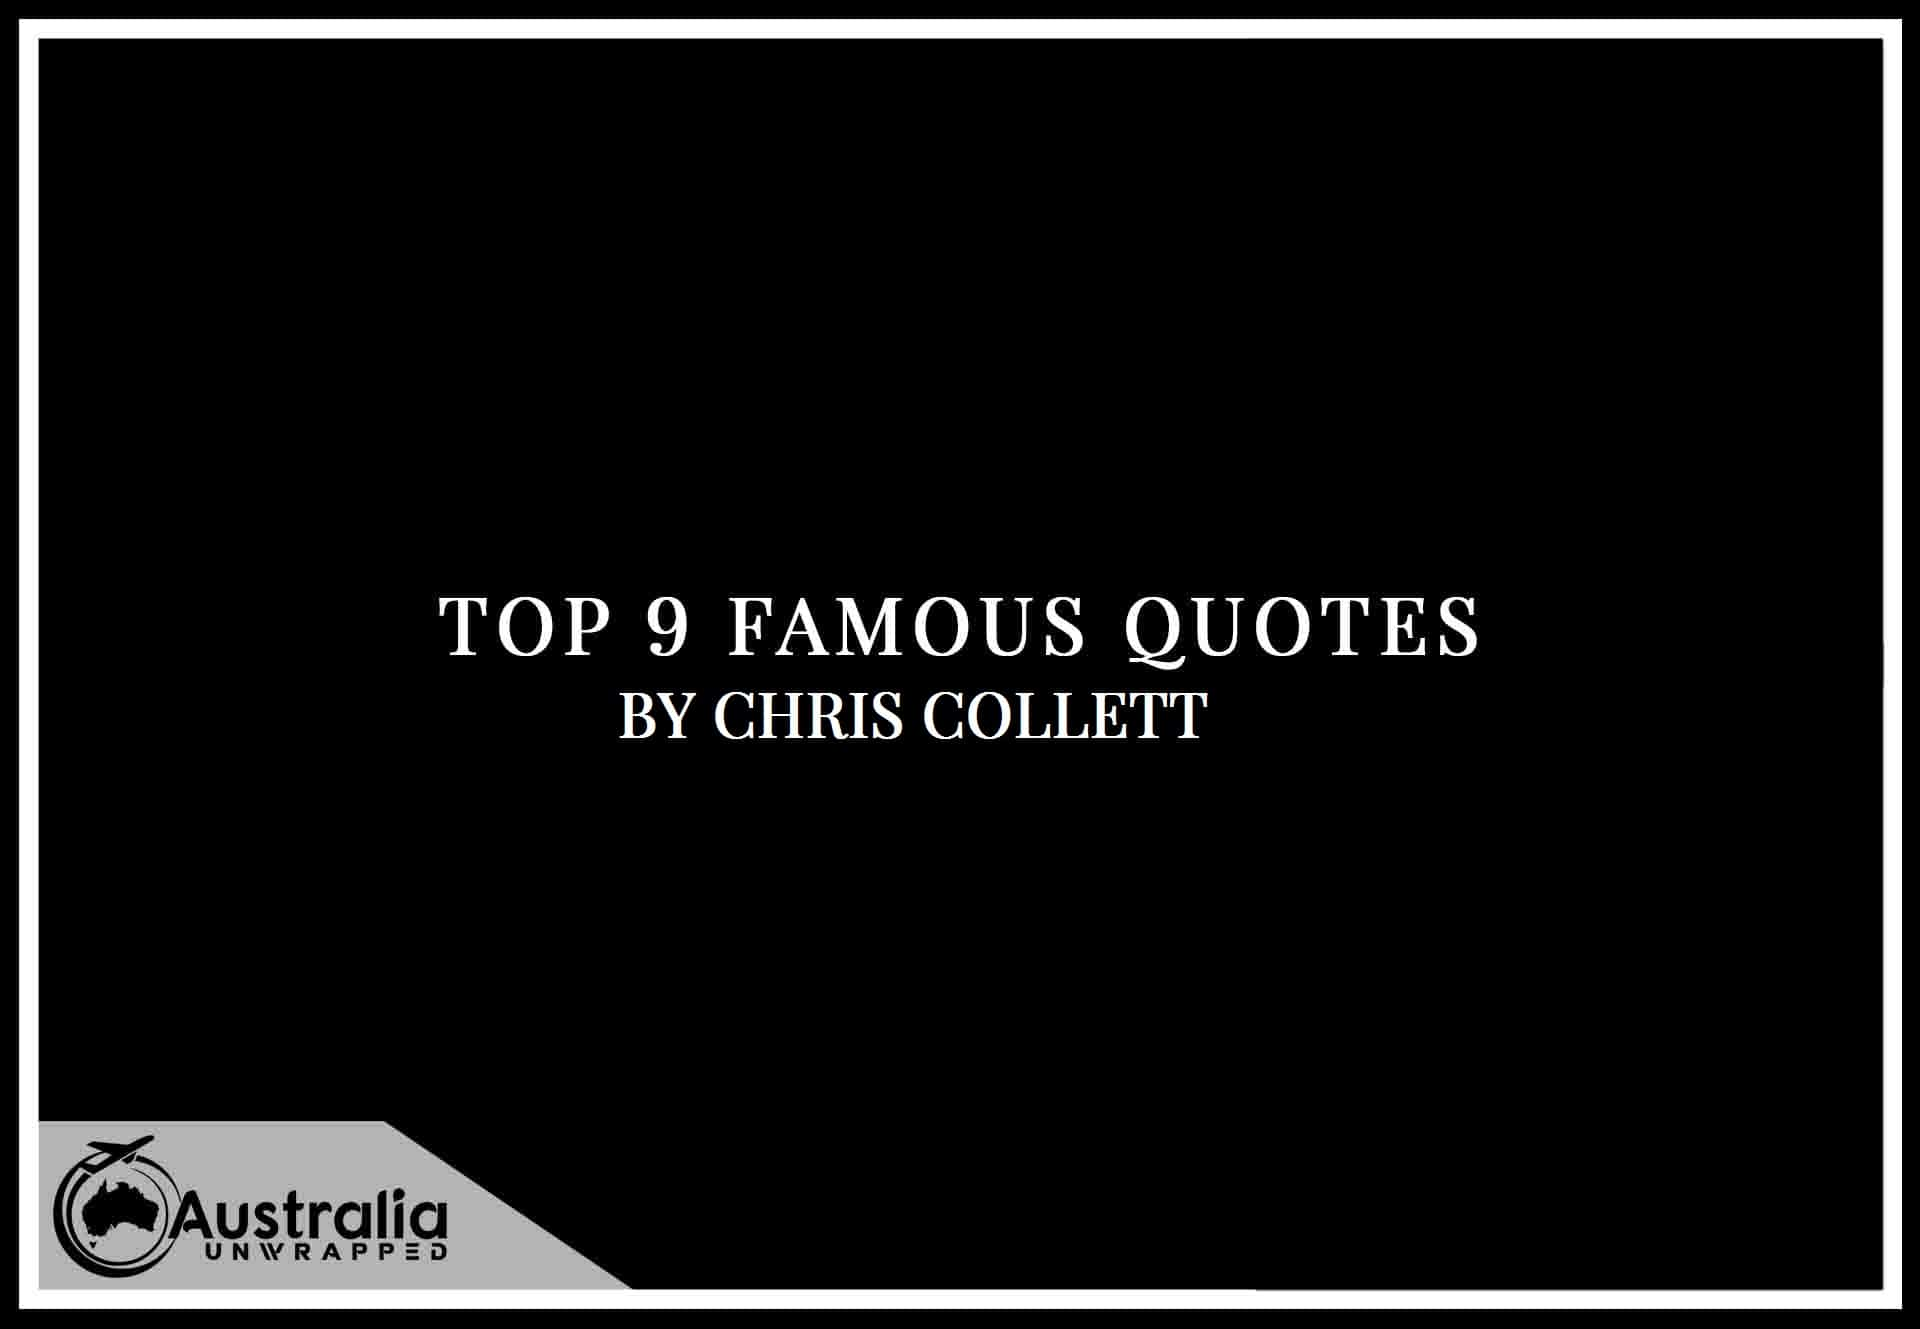 Chris Collett's Top 9 Popular and Famous Quotes